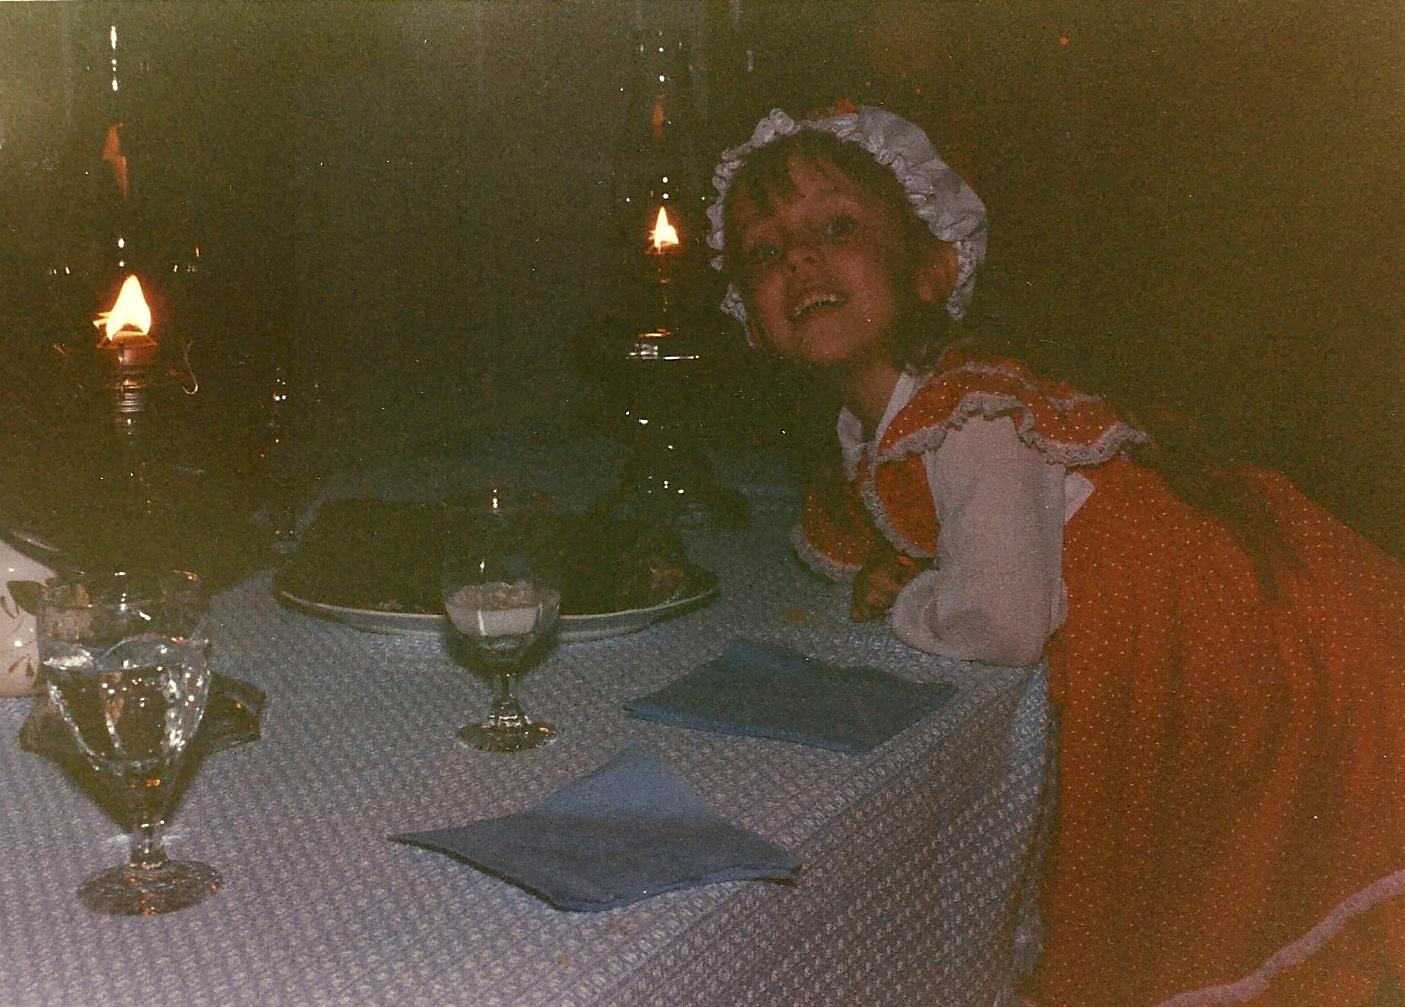 A young me, proudly posing before our dimly-lit colonialdinner table. Apparently, they pulled out all the stops in George Washington's day with blue paper napkins.